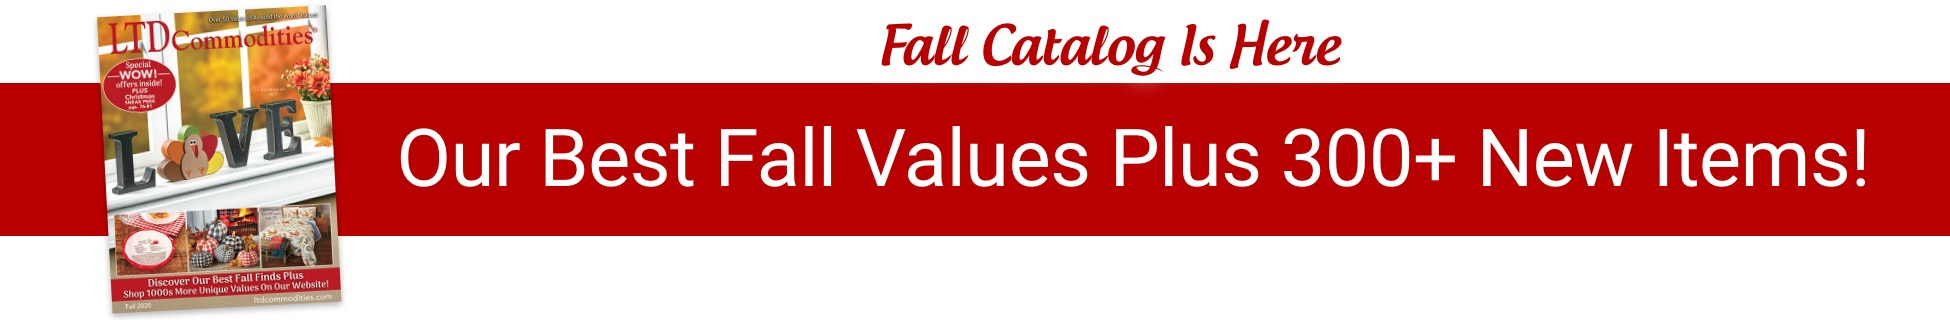 Fall Catalog Is Here